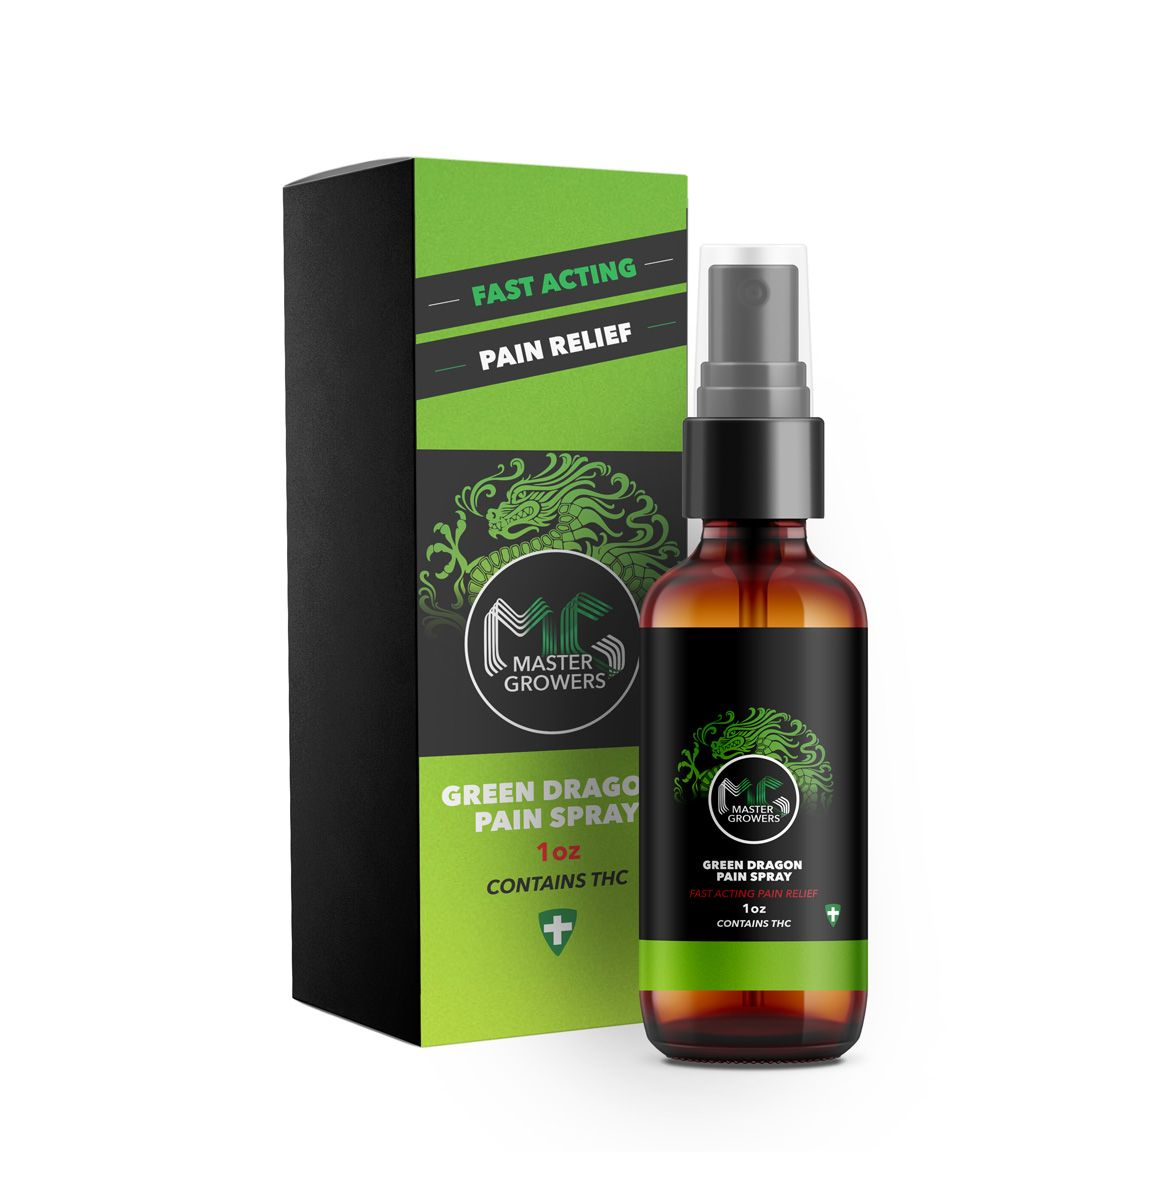 Green Dragon Pain Spray